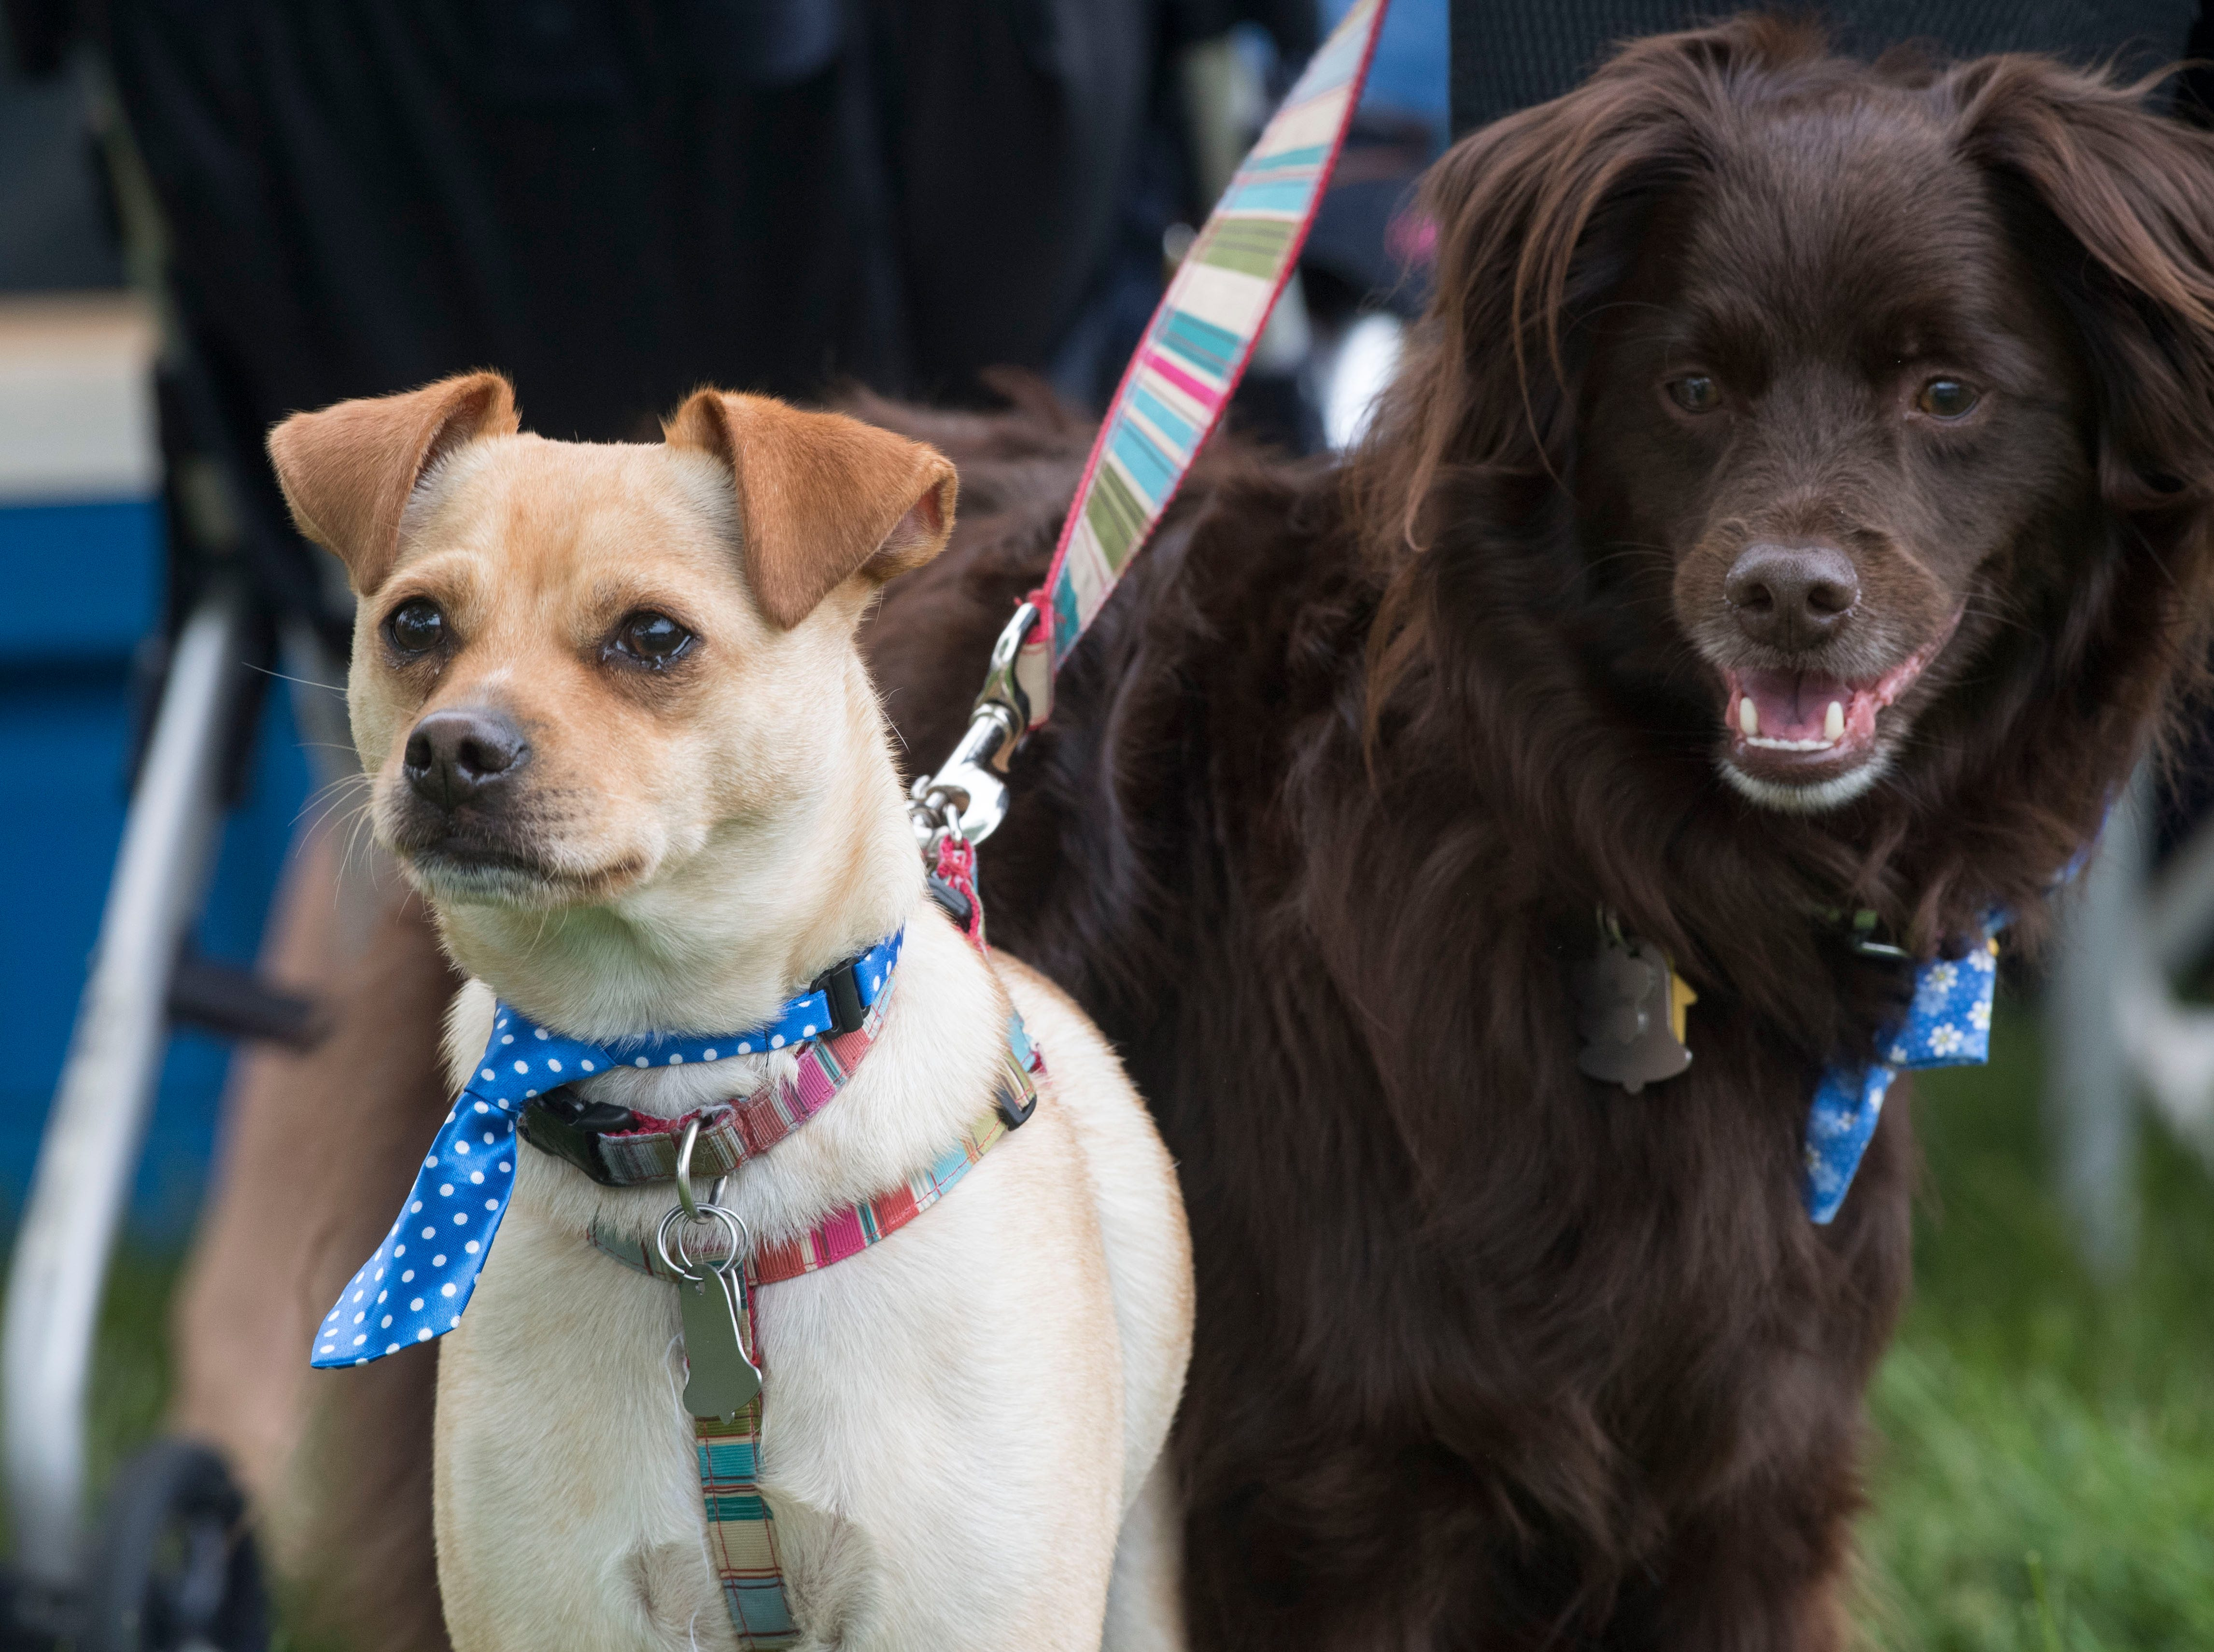 Dexter, left, a mix from the Evansville Animal Care and Control shelter, and Addie, right, a Australian Shepard mix, check out the action during the 2019 Spirit Fest Saturday, May 11, 2019. Spirit Fest is a day of fun and activities that benefits the Spirit Medical Fund which raises money for the Evansville Animal Care and Control shelter.